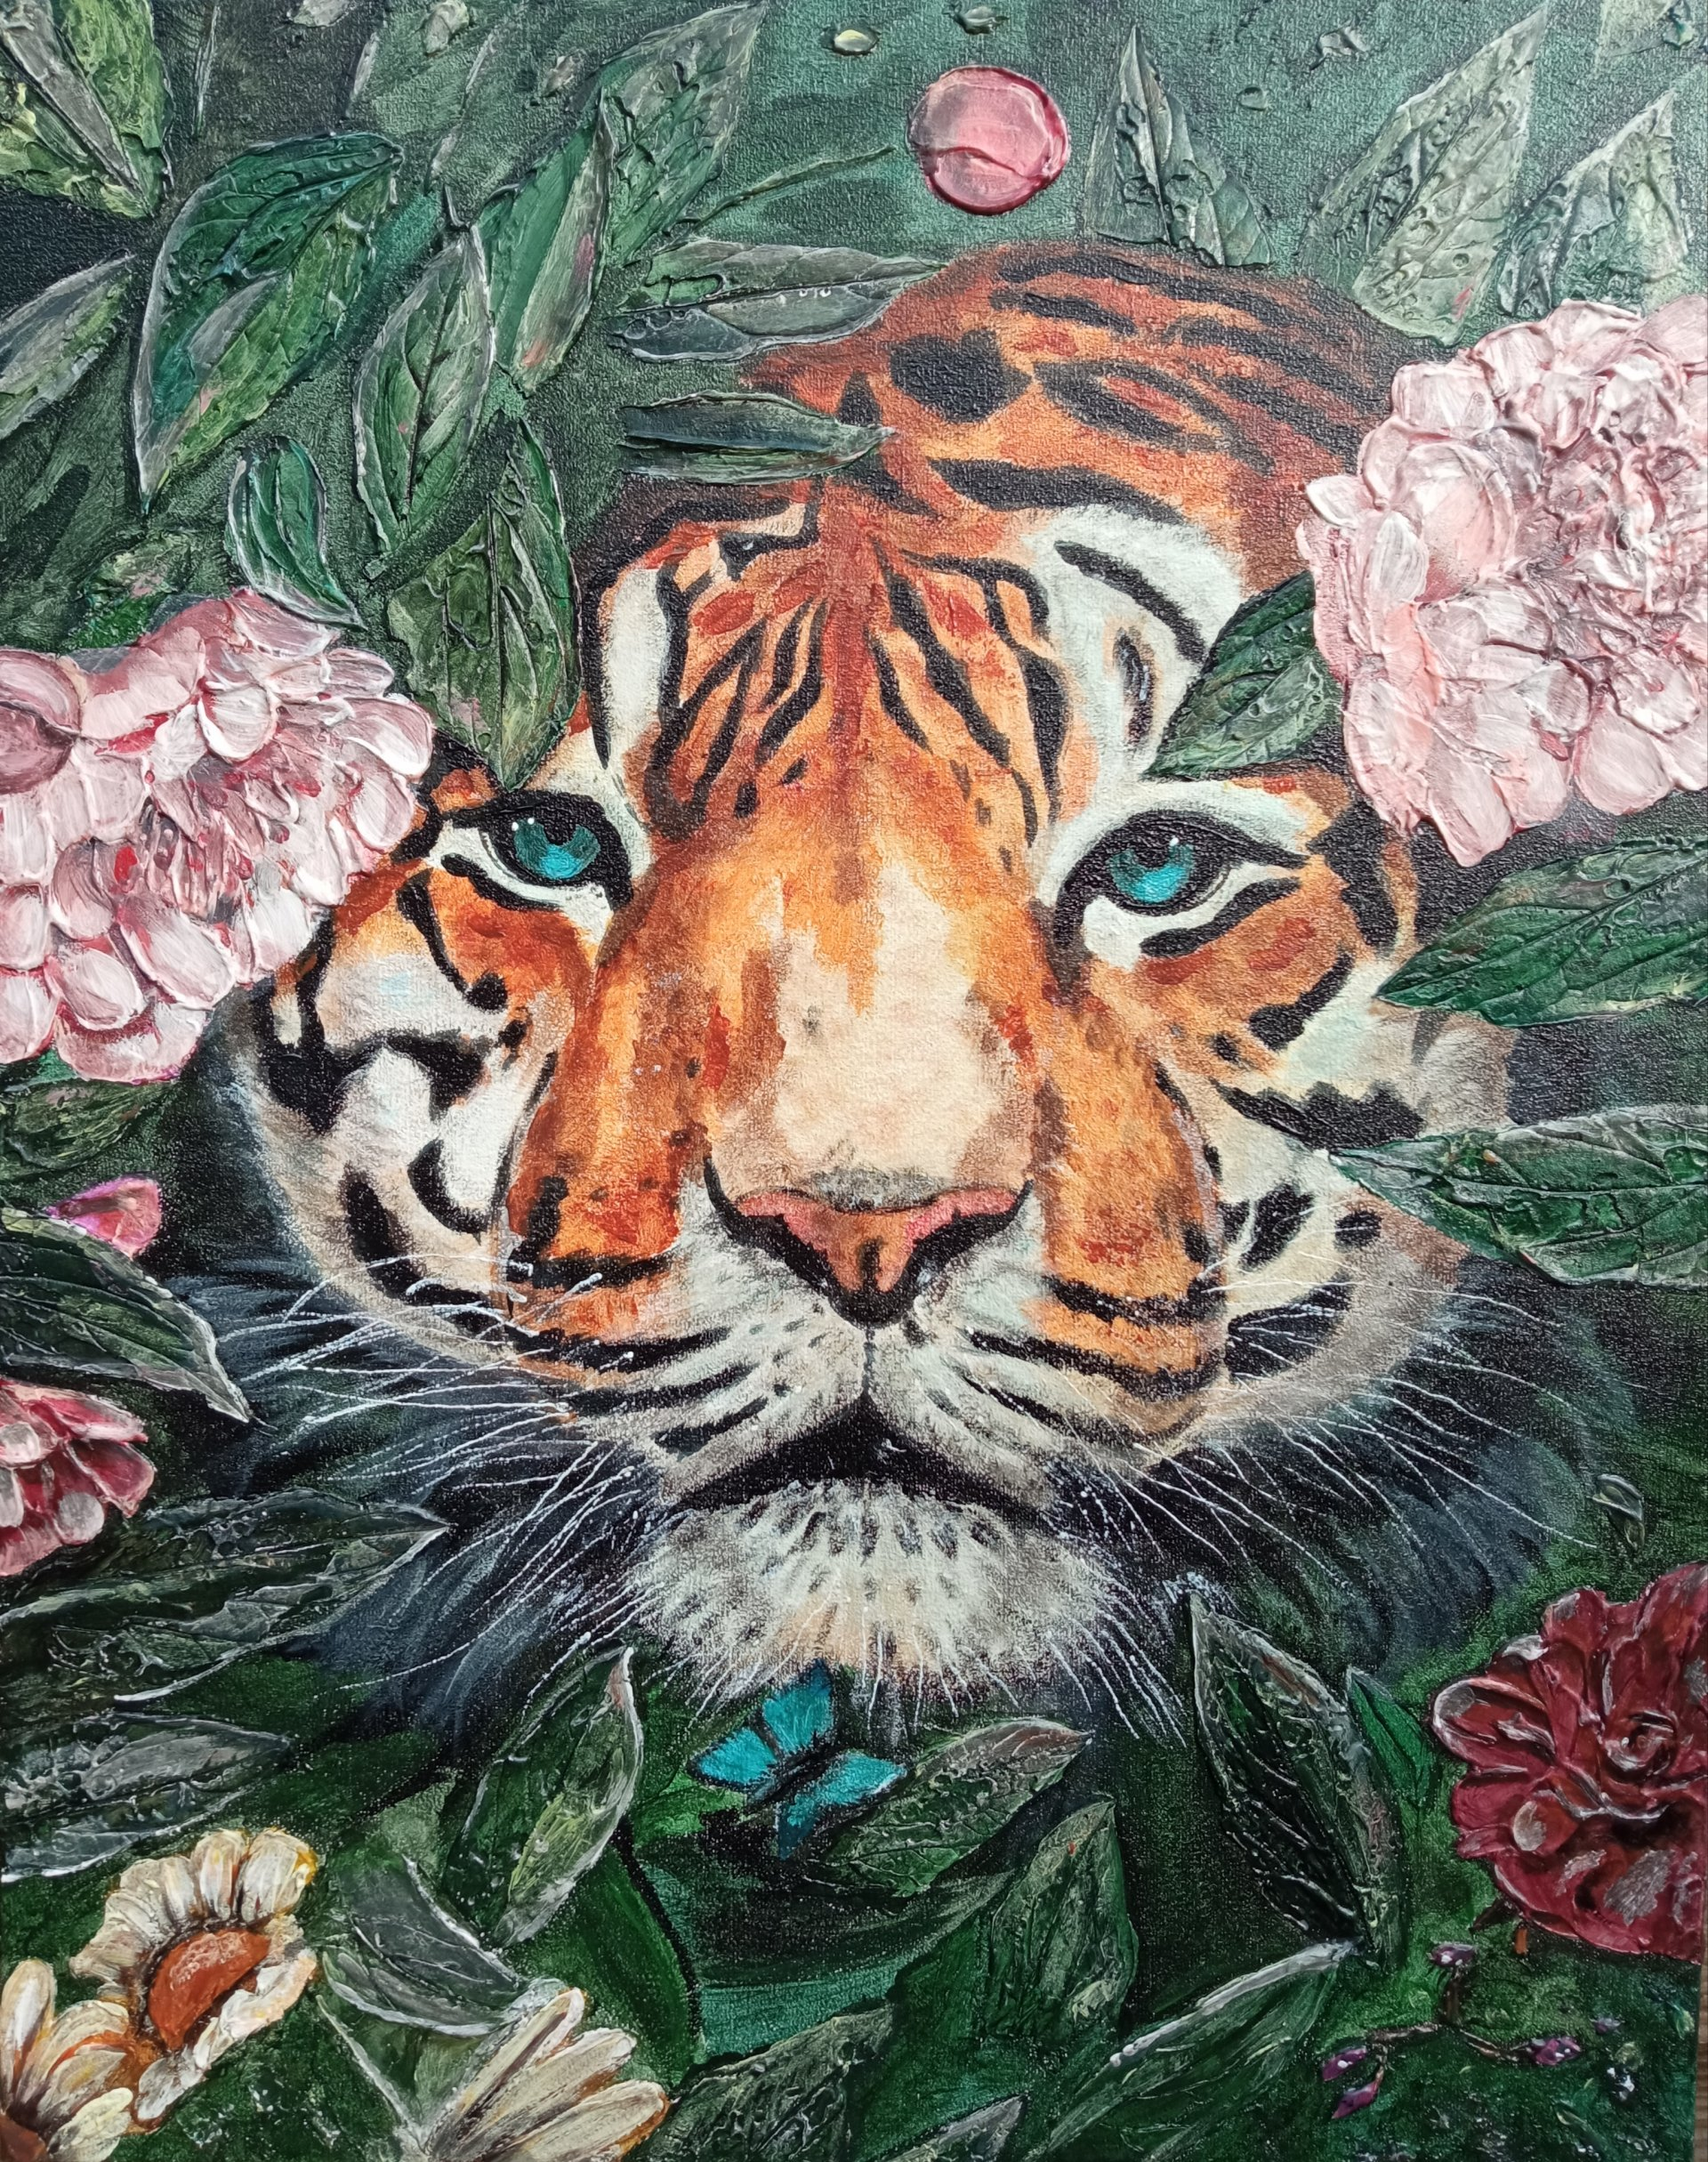 Tiger lurched in flowers